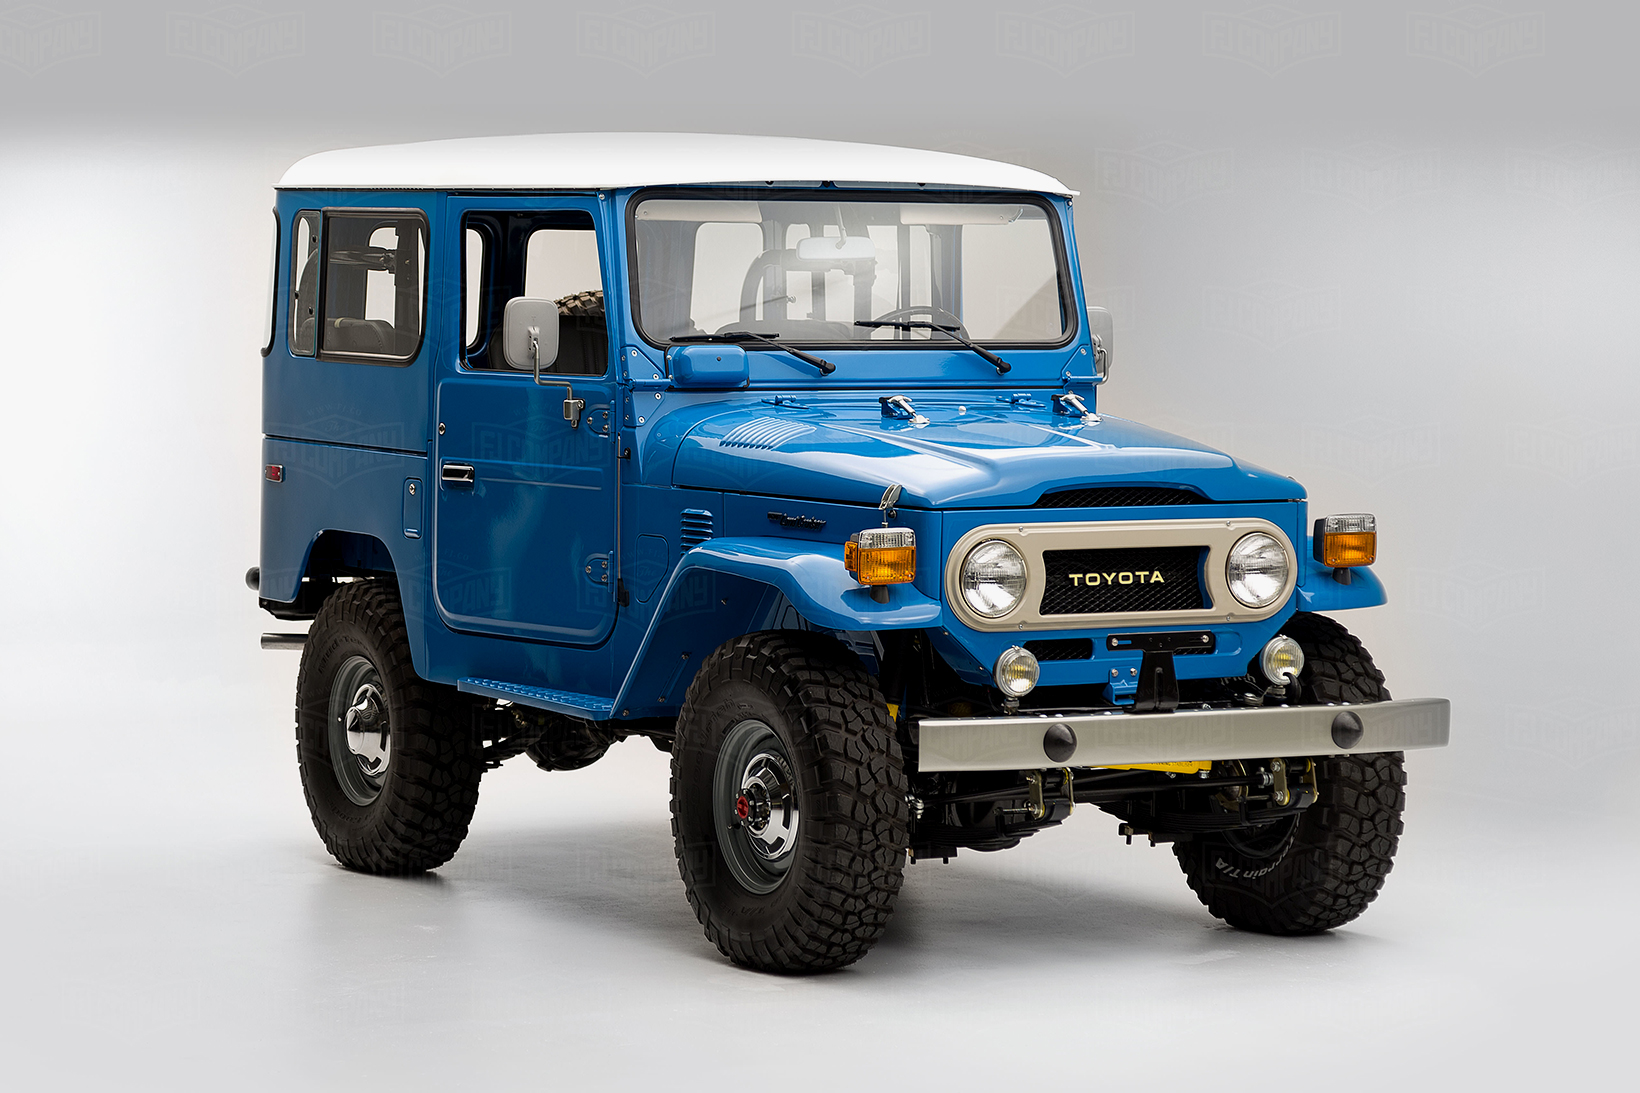 fj company restored a 1978 toyota land cruiser hypebeast. Black Bedroom Furniture Sets. Home Design Ideas